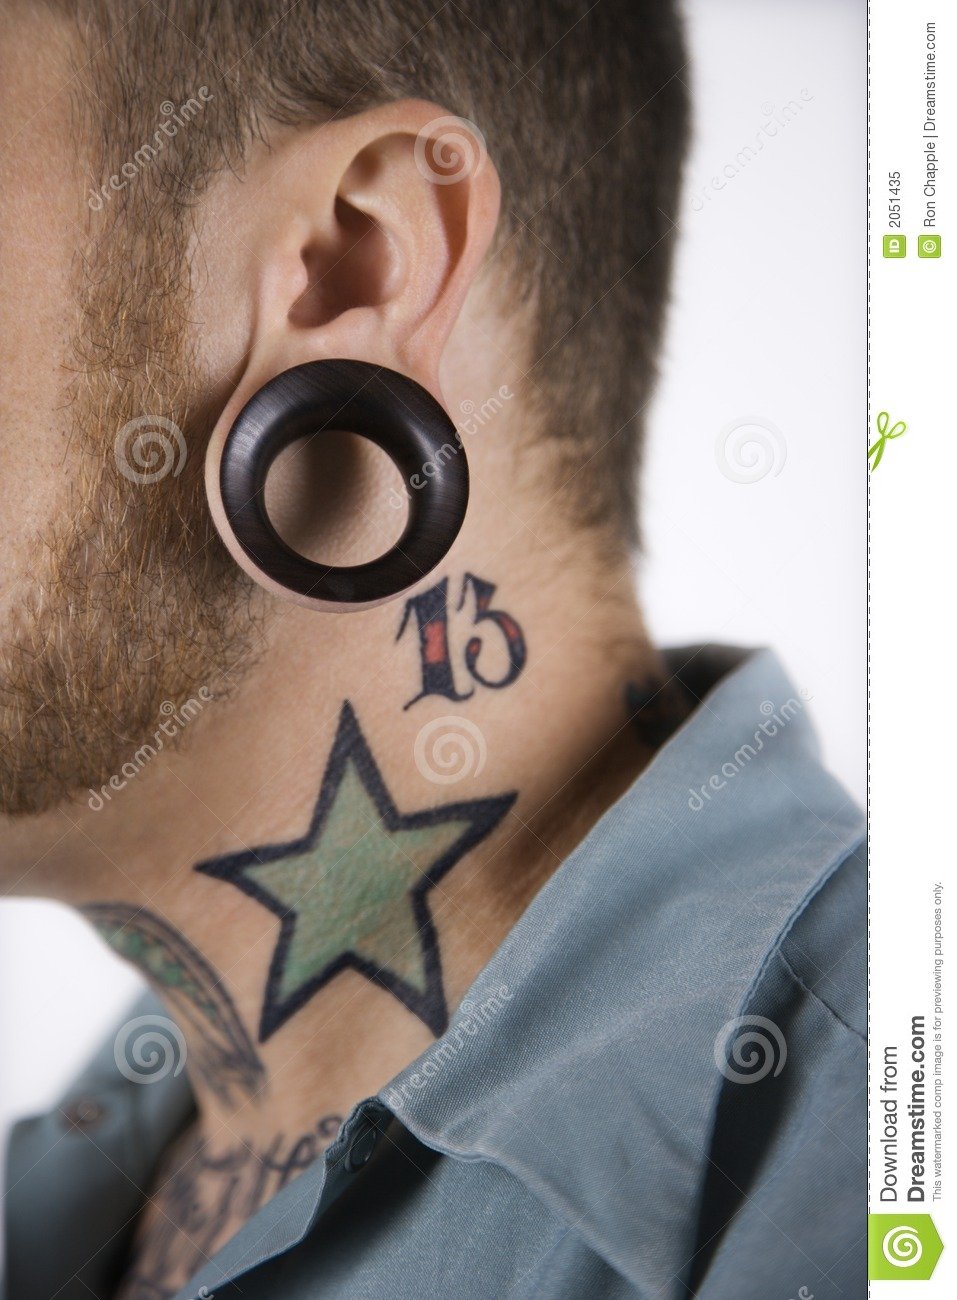 Male with tattoos and piercing stock image image 2051435 for Tattoos and piercing